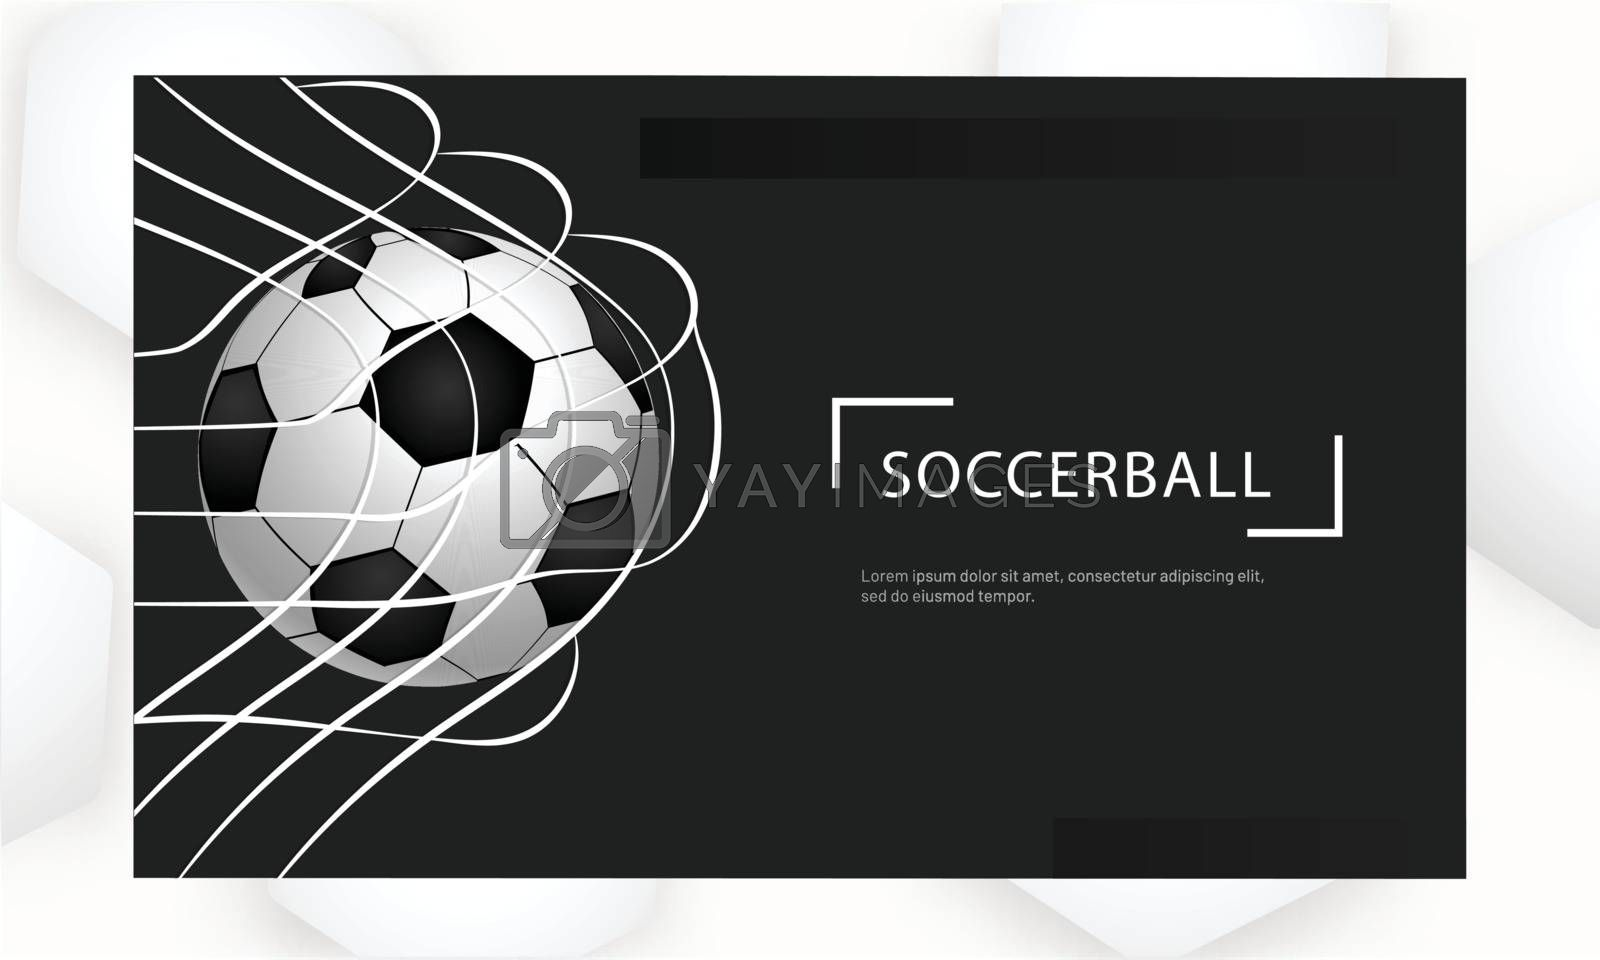 Realistic football in net on black background for soccer tournament concept based poster or banner design.